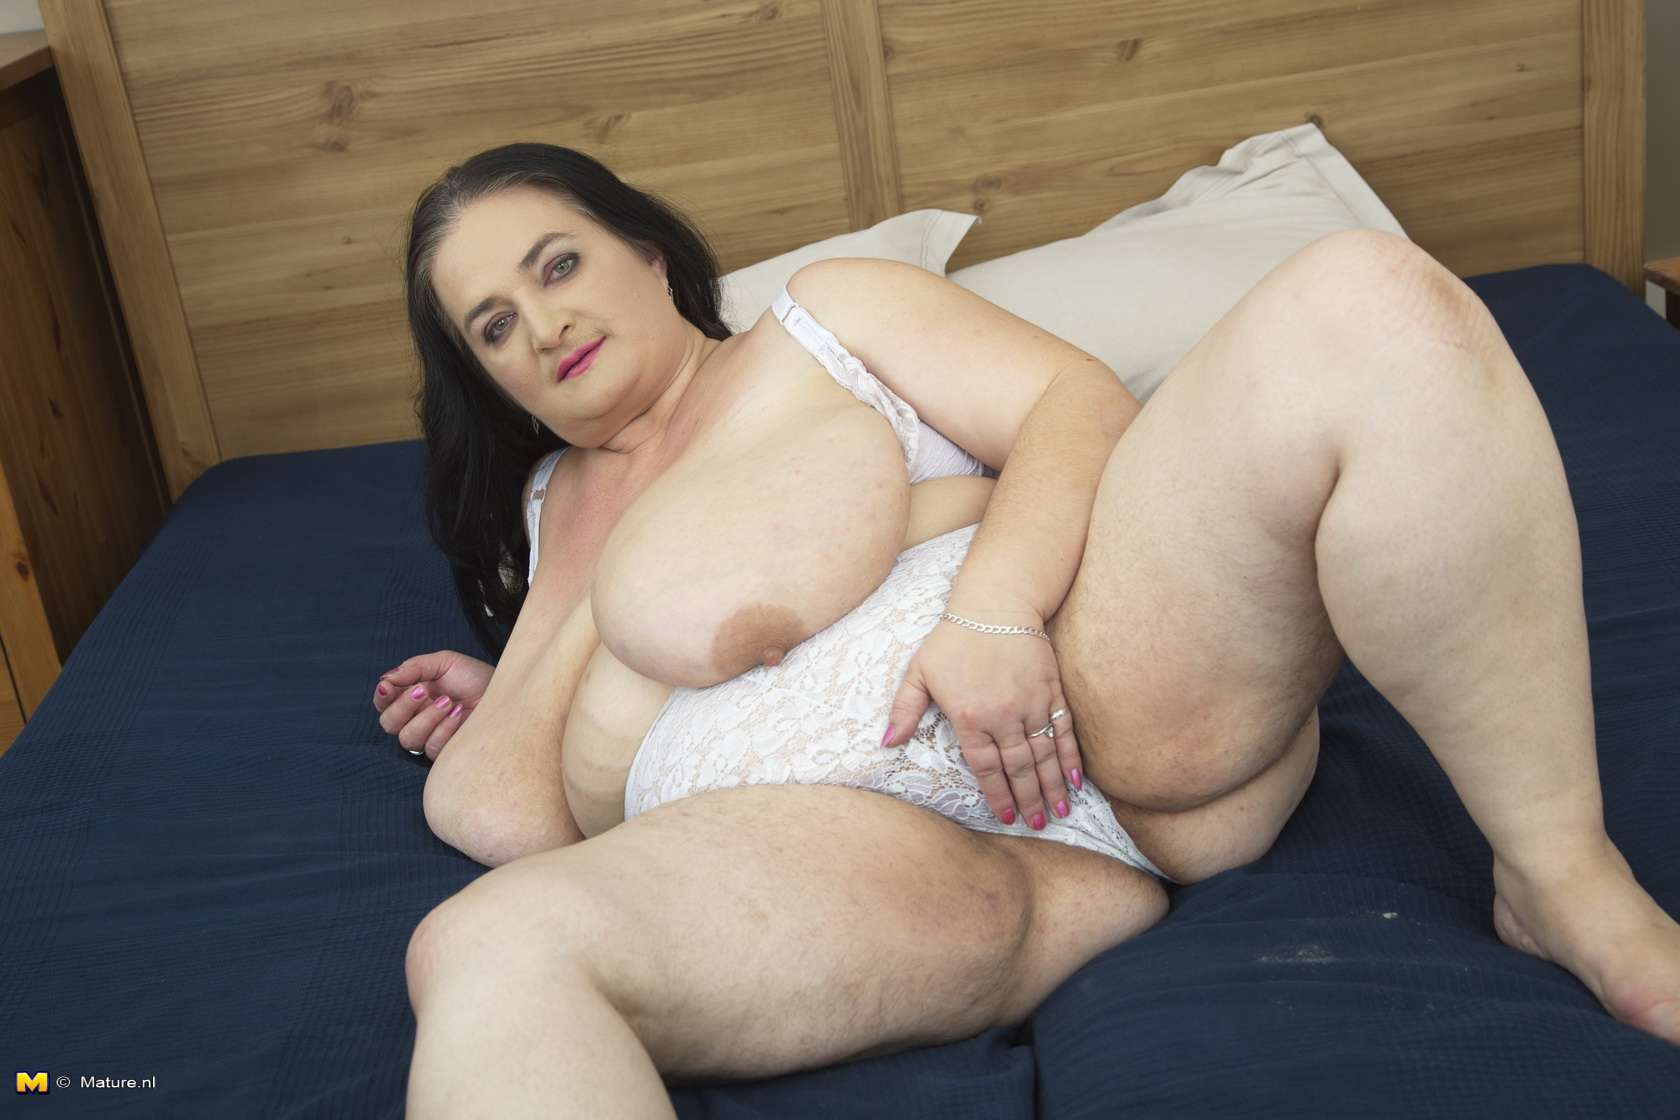 Huge Breasted Mature Lady Playing With Her Pussy At Mature.nl